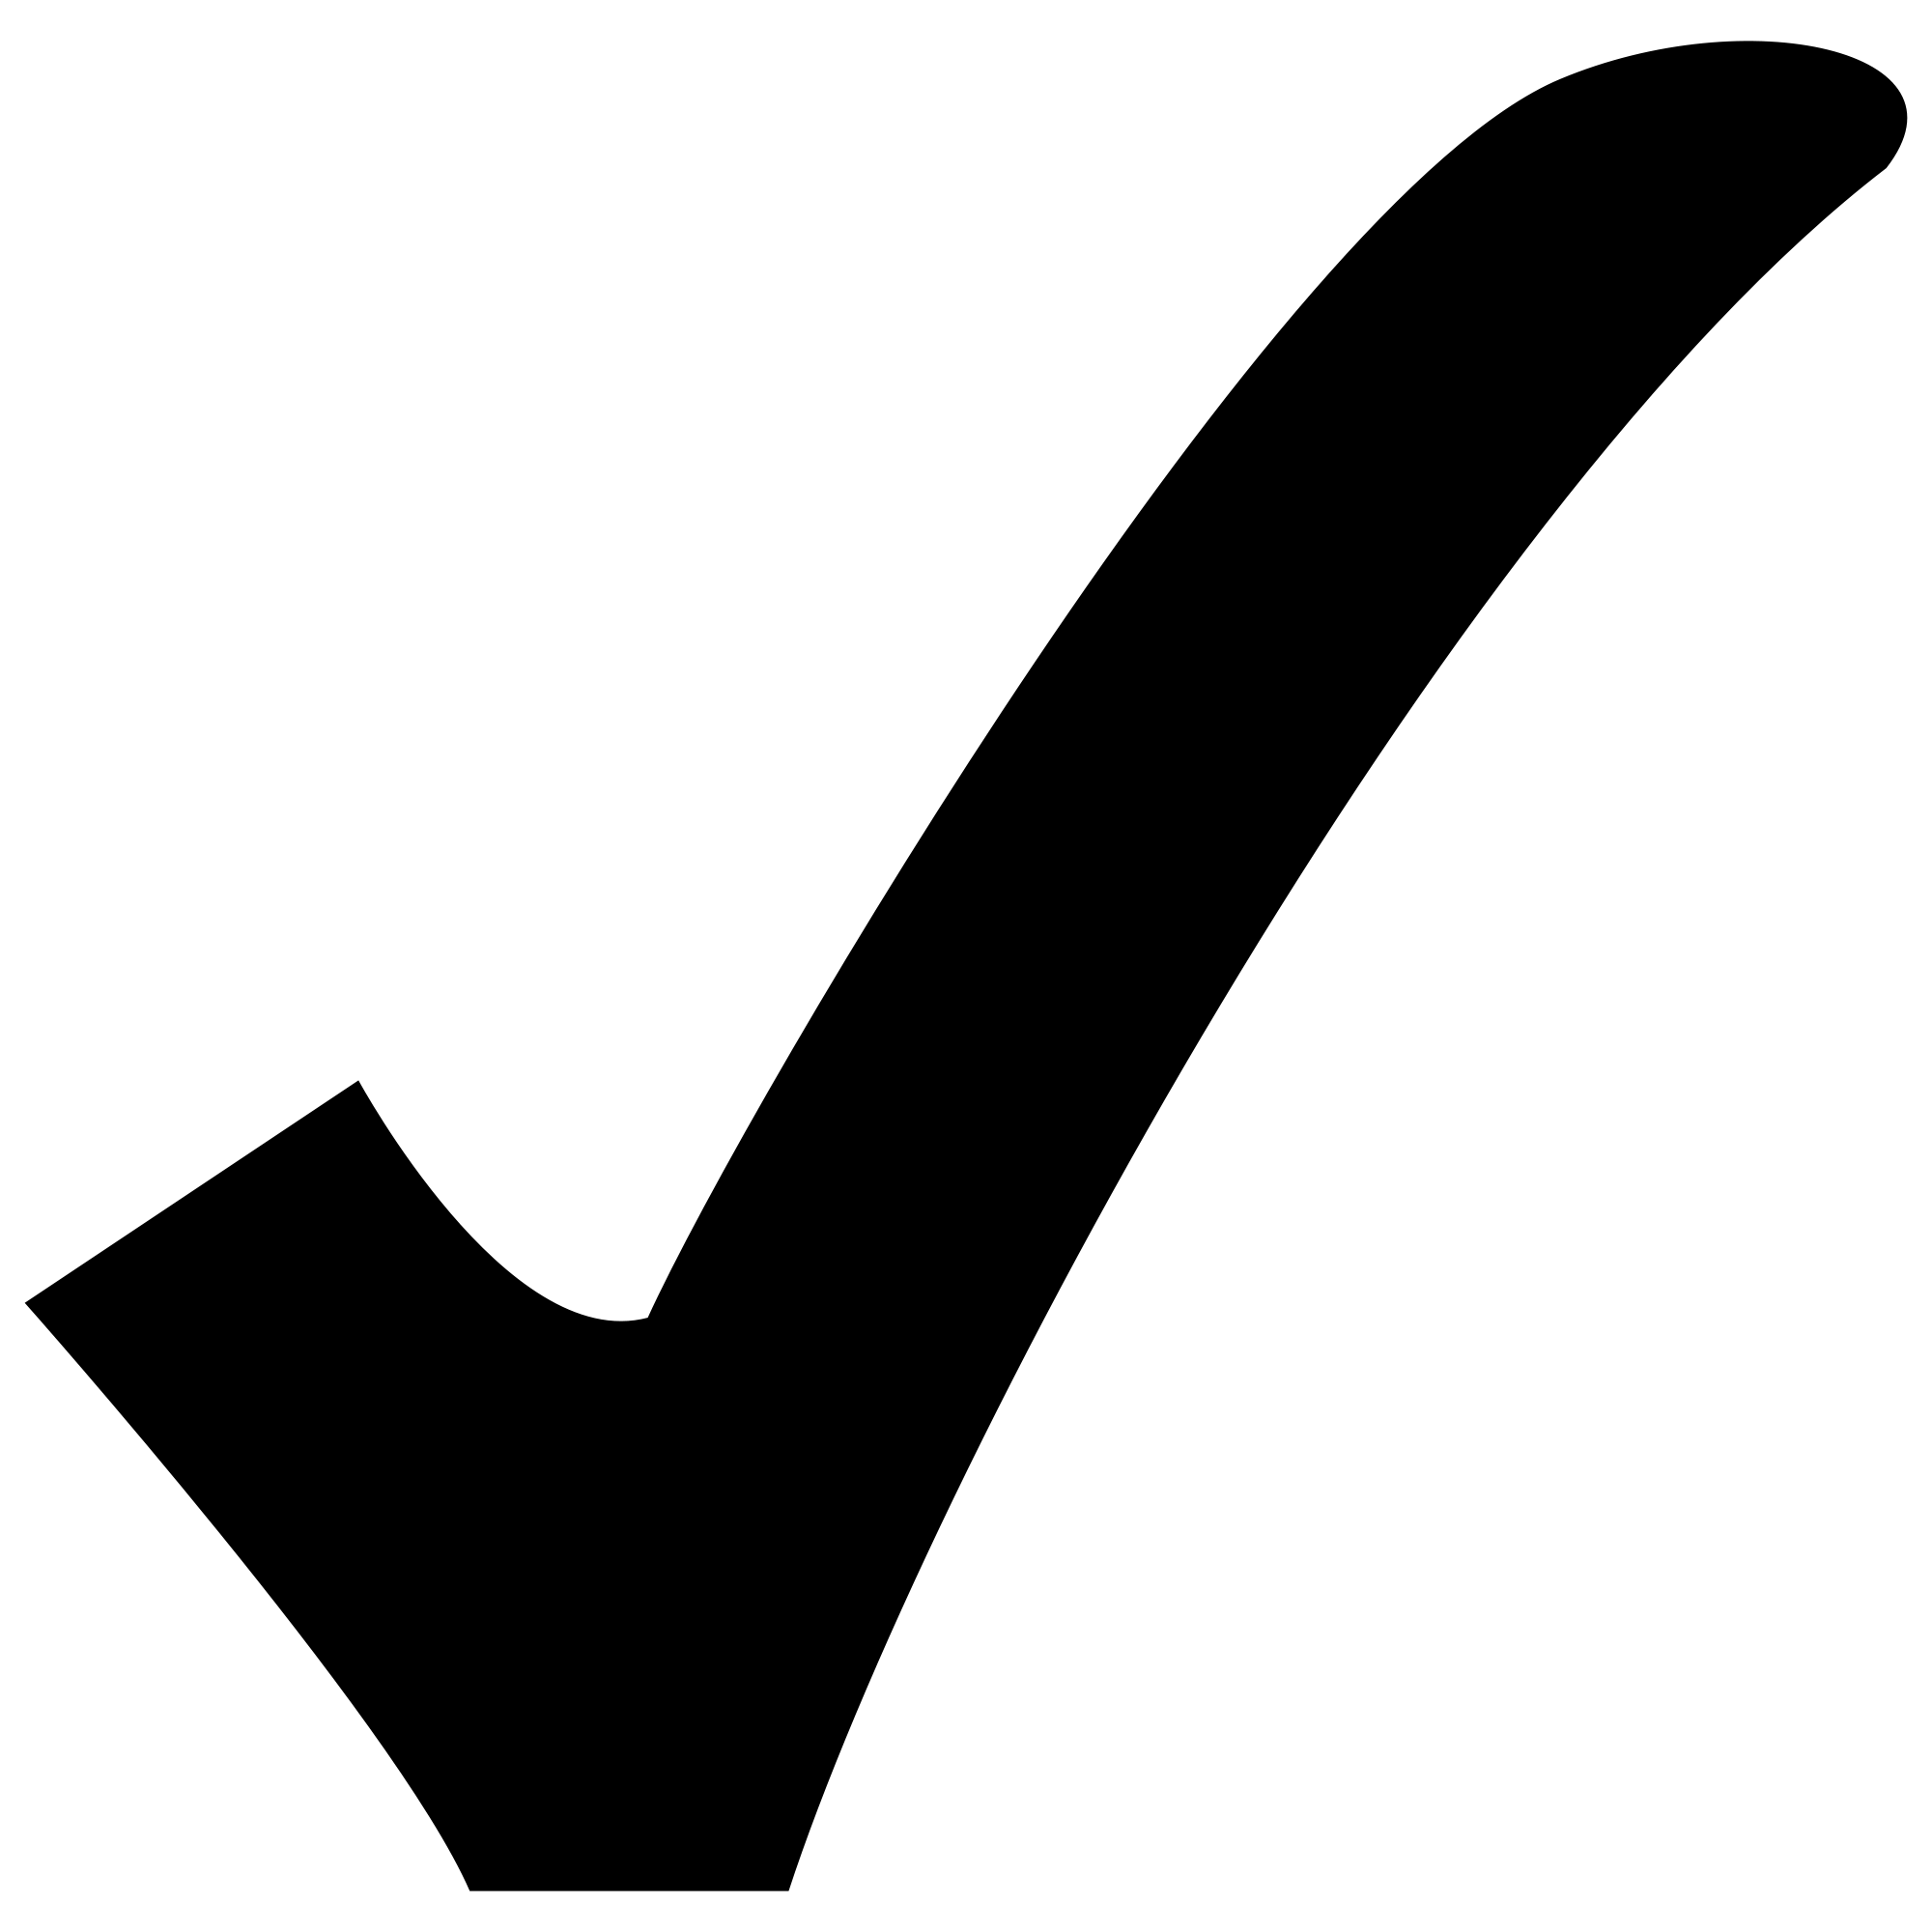 Black check png. File svg wikimedia commons